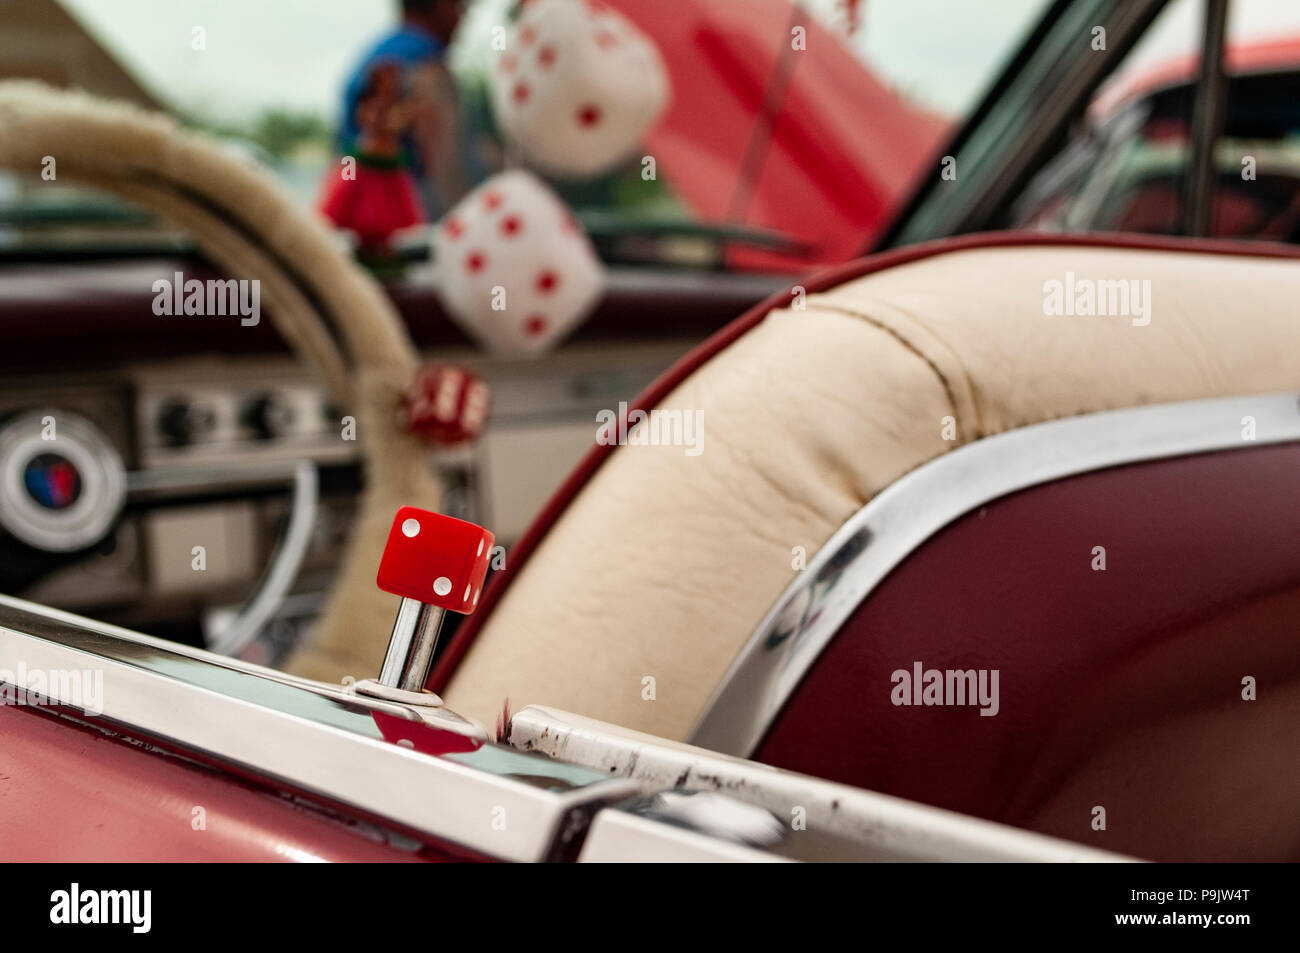 Classic convertibles at a car show in California with custom upholstery and fuzzy dice. - Stock Image